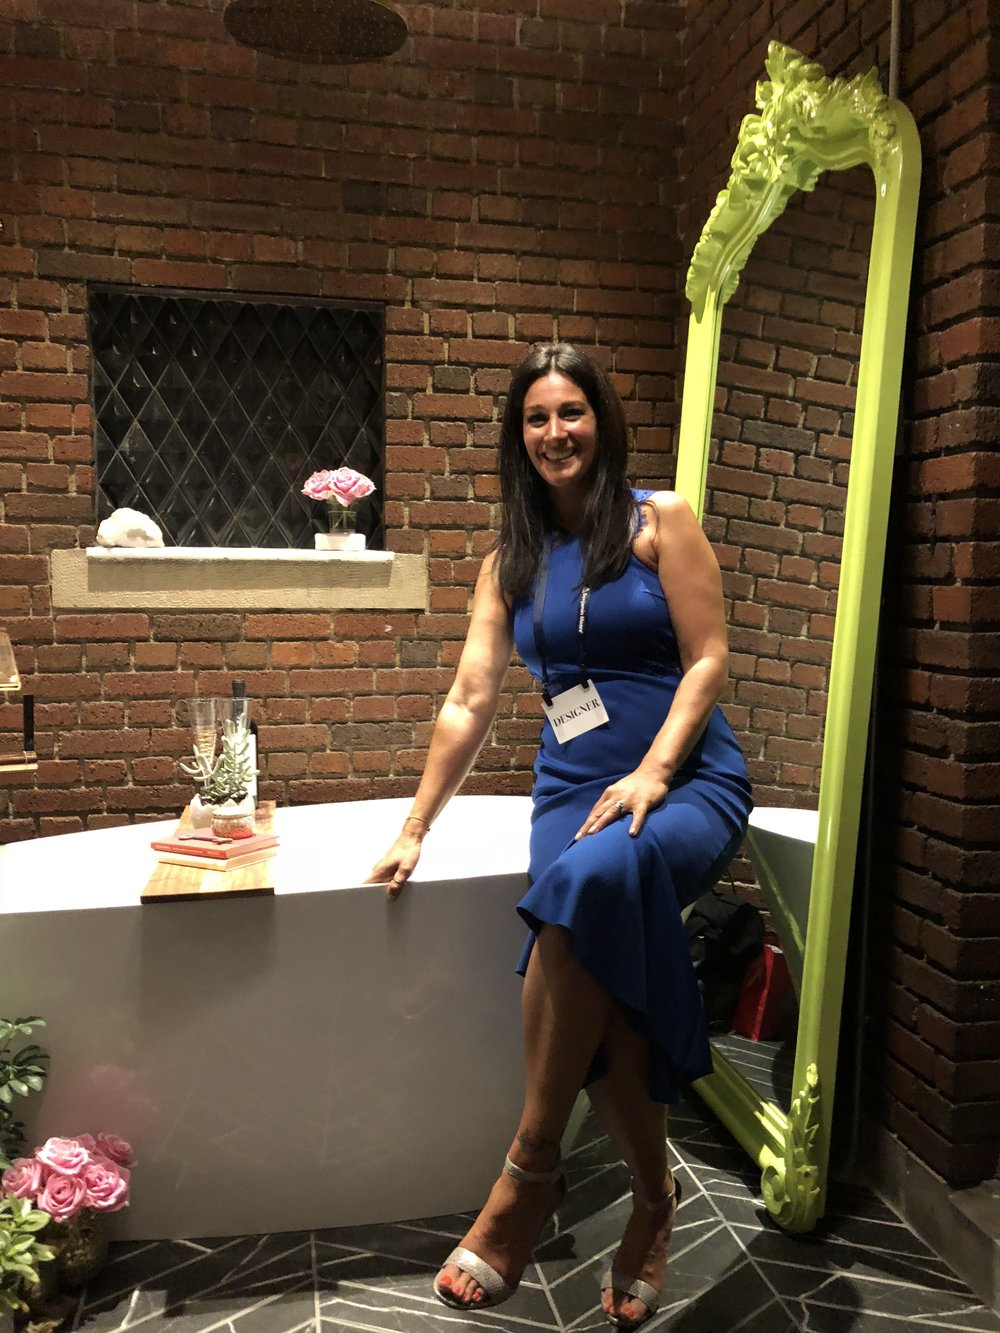 Kristen Eleni Shellenbarger of Iron Key Designs in her Garden Bath by our Green Tudor Mirror